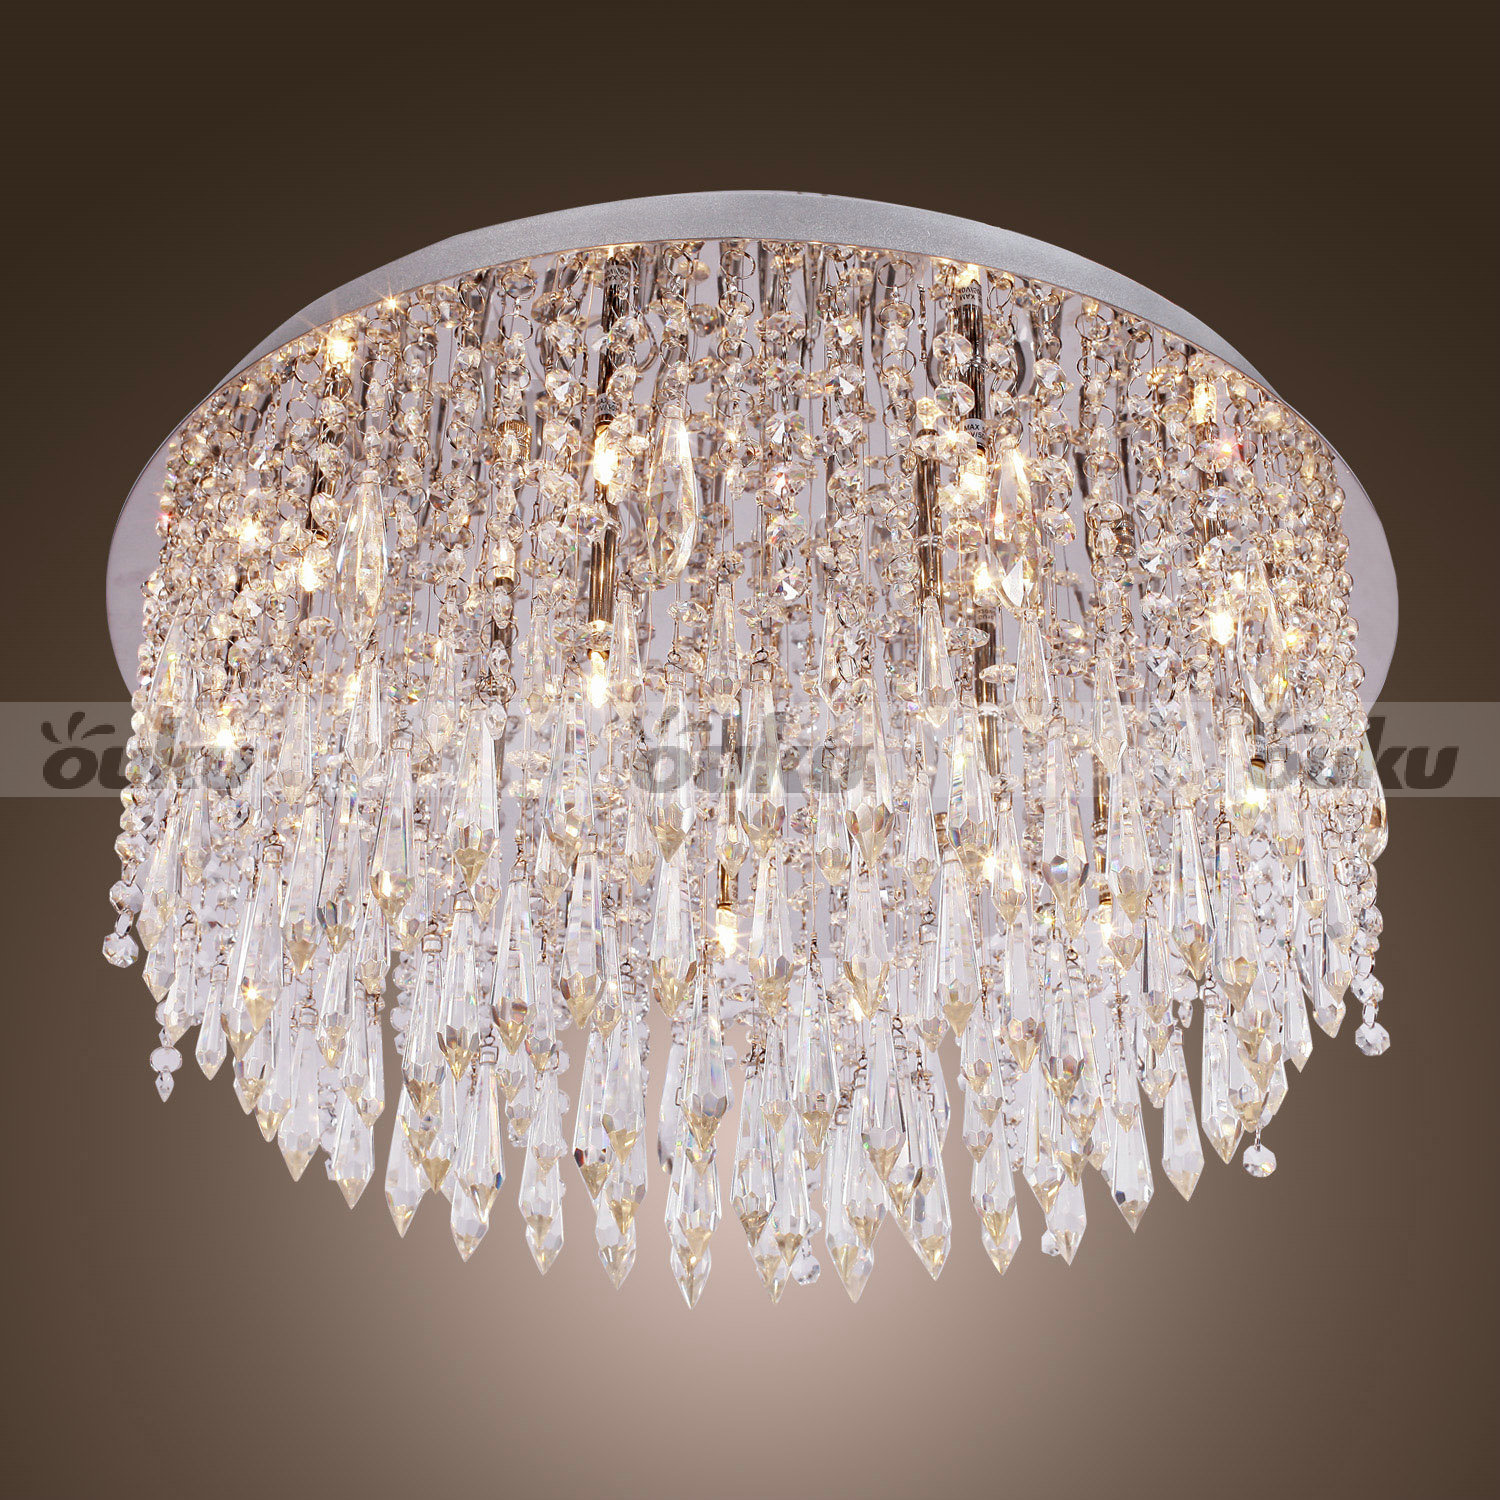 Amora Lighting Tiffany Style 3 Light Jeweled Design Large Floating 17 Inch Flush Mount. Childrens & tiffany ceiling lights ebay | Roselawnlutheran azcodes.com